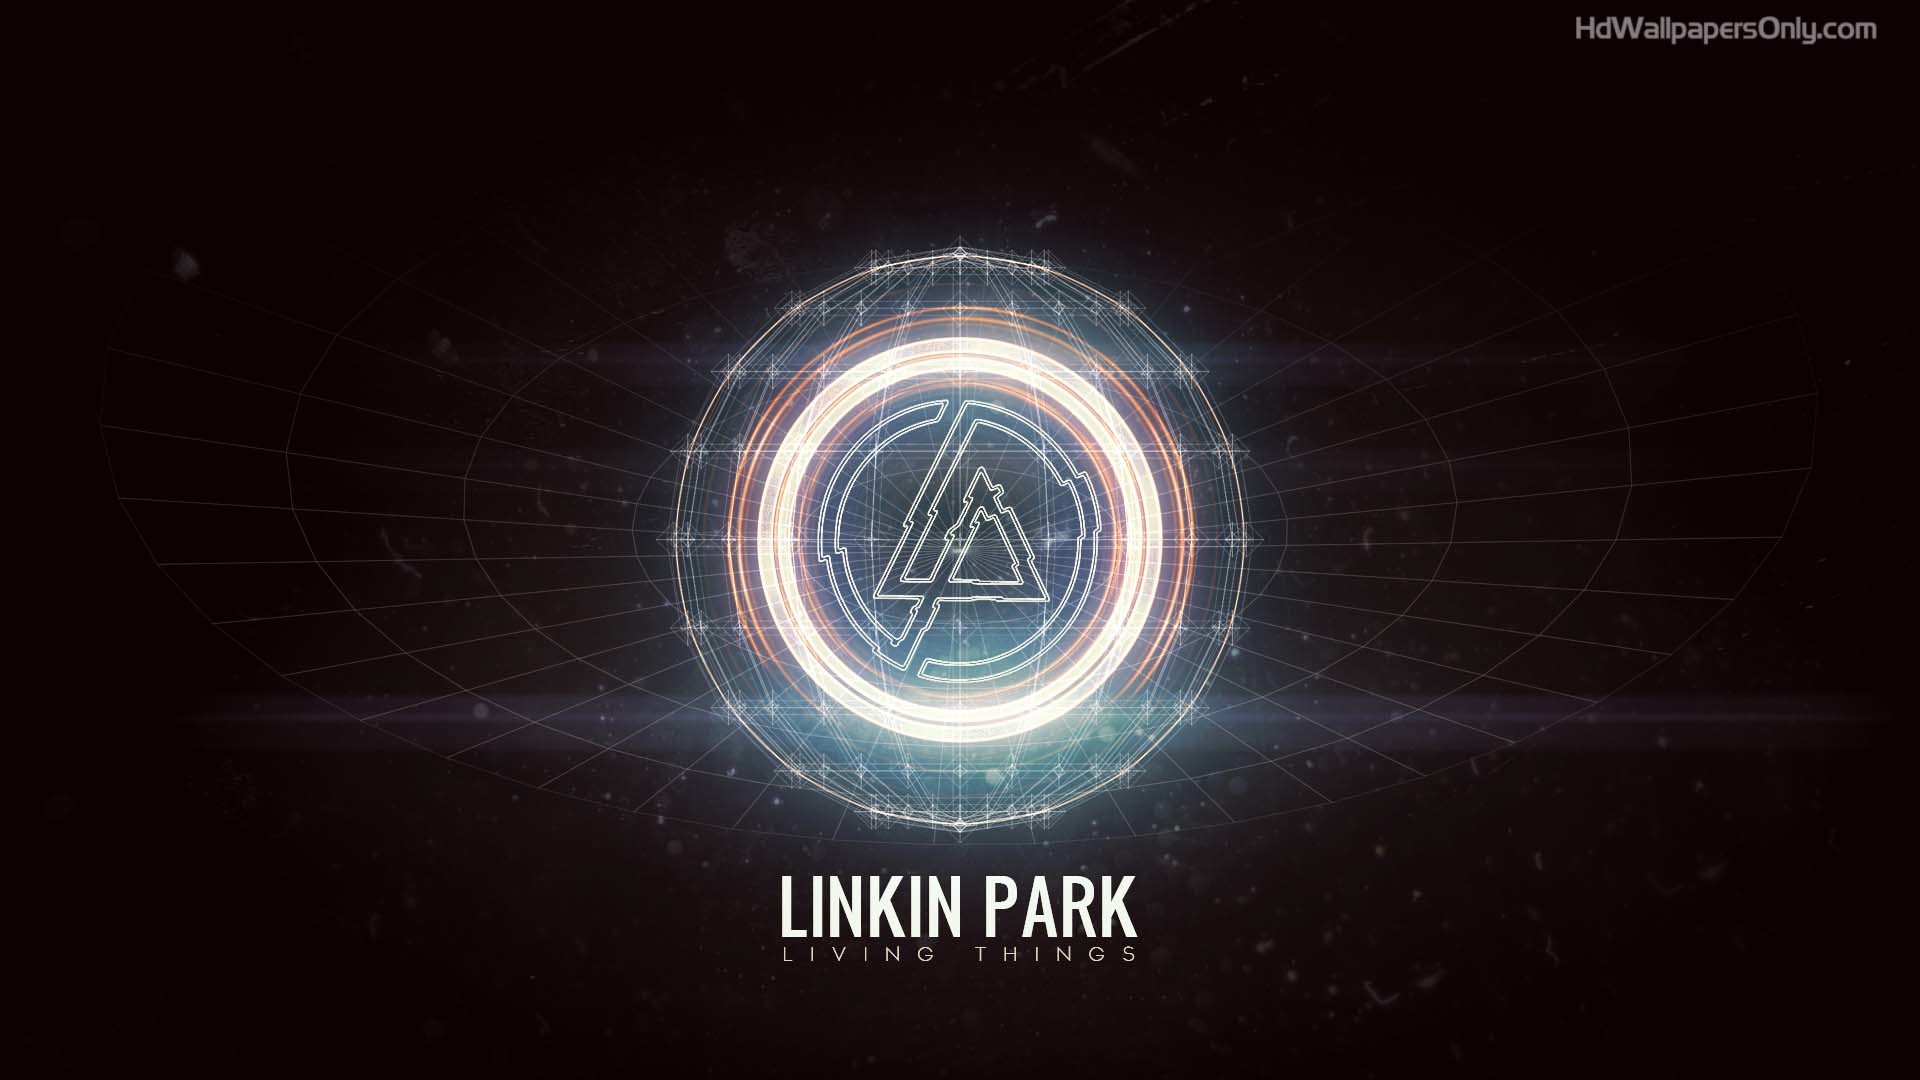 Linkin Park HD Wallpapers 1080p – HD Wallpapers OnlyHD Wallpapers Only